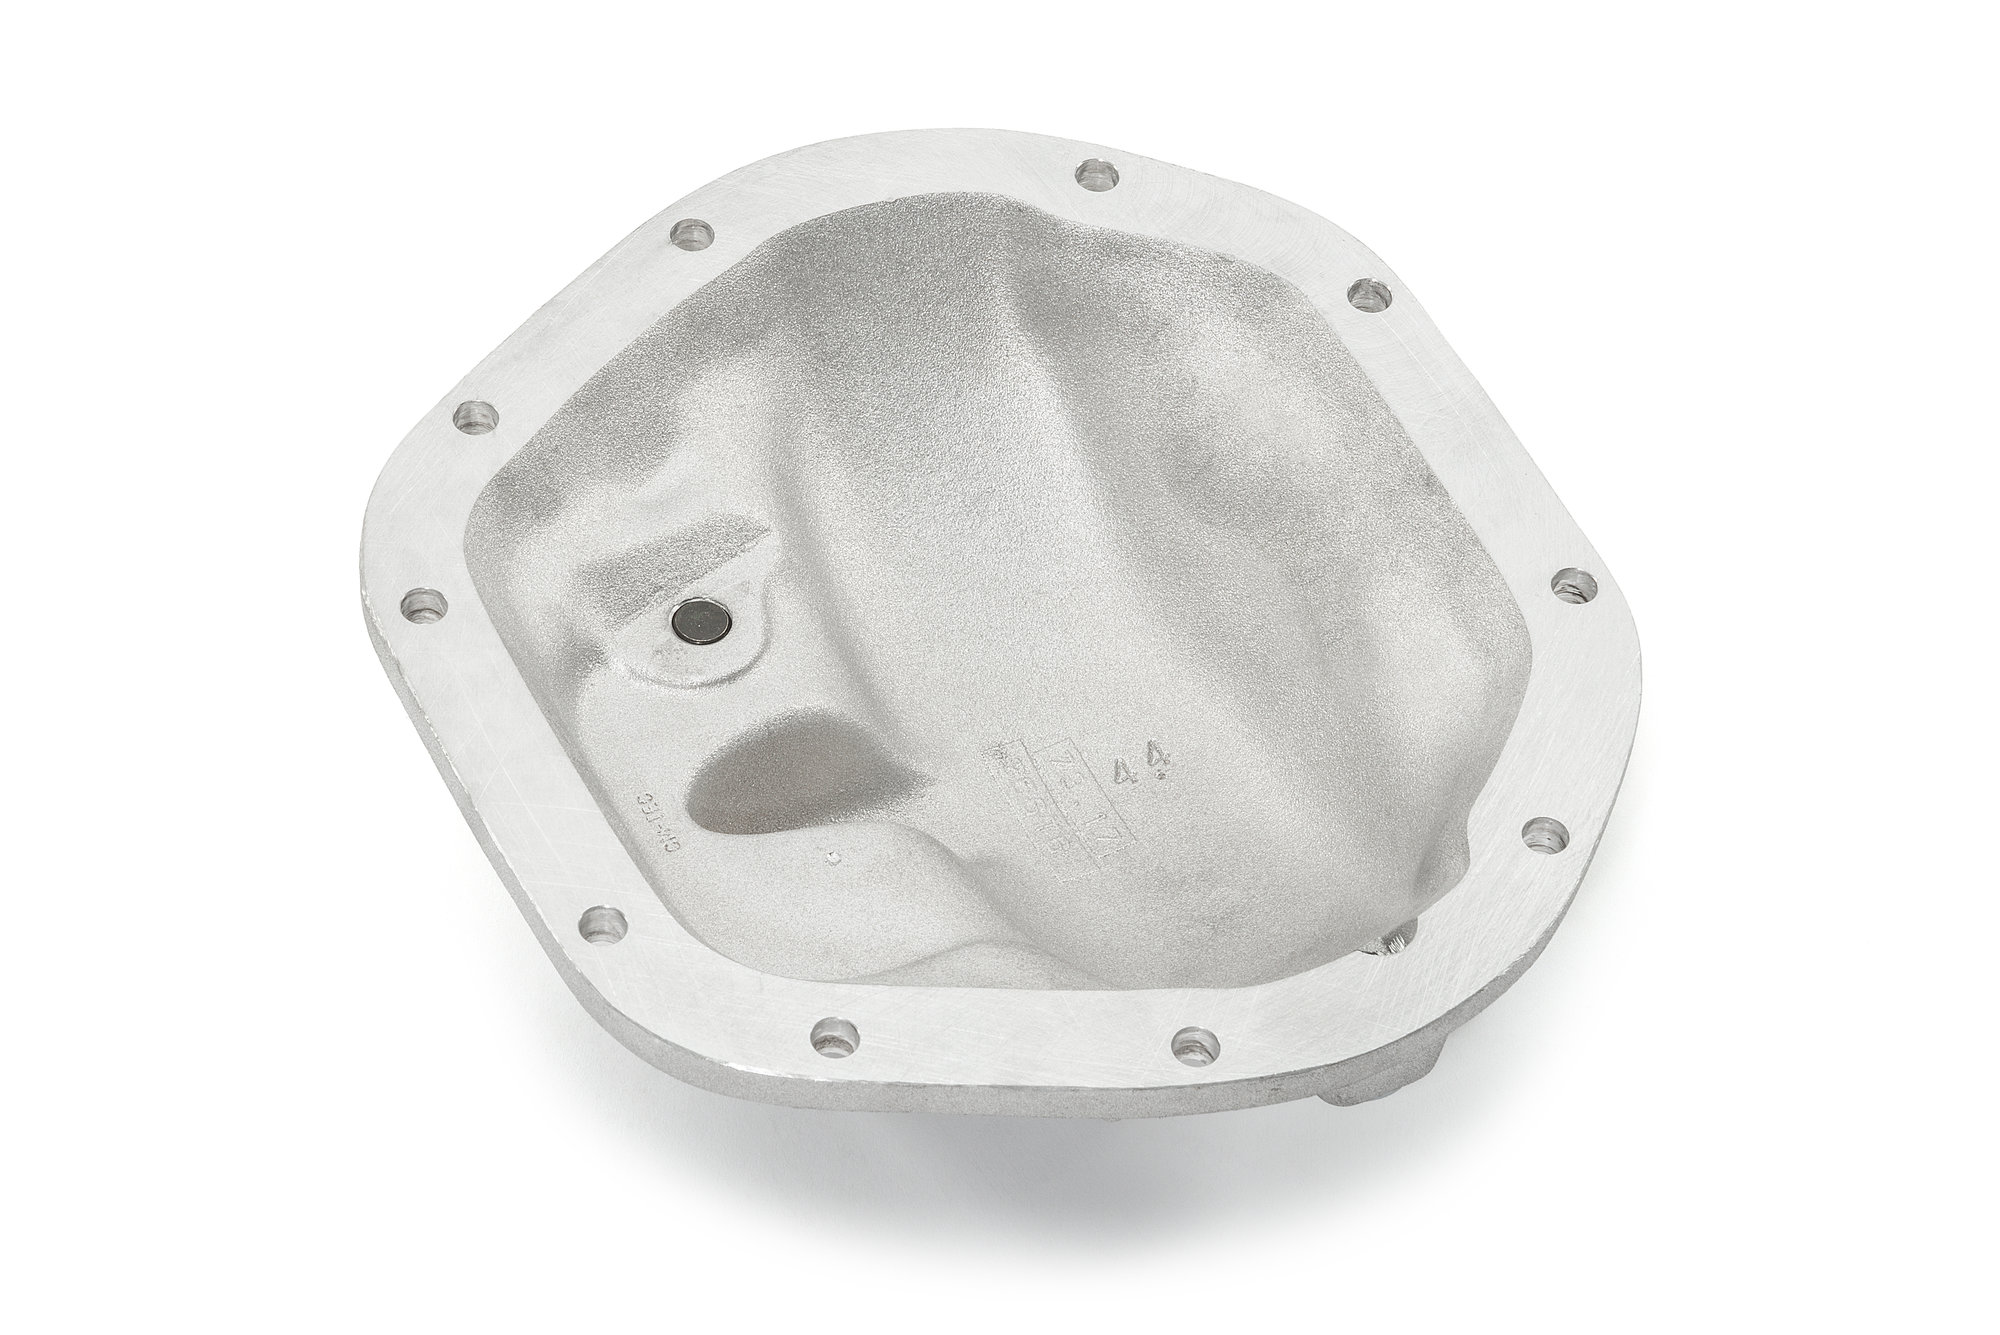 G2_Axle _ & _ Gear_Aluminum_Hammer_Differential_Cover_Dana_44_Inside